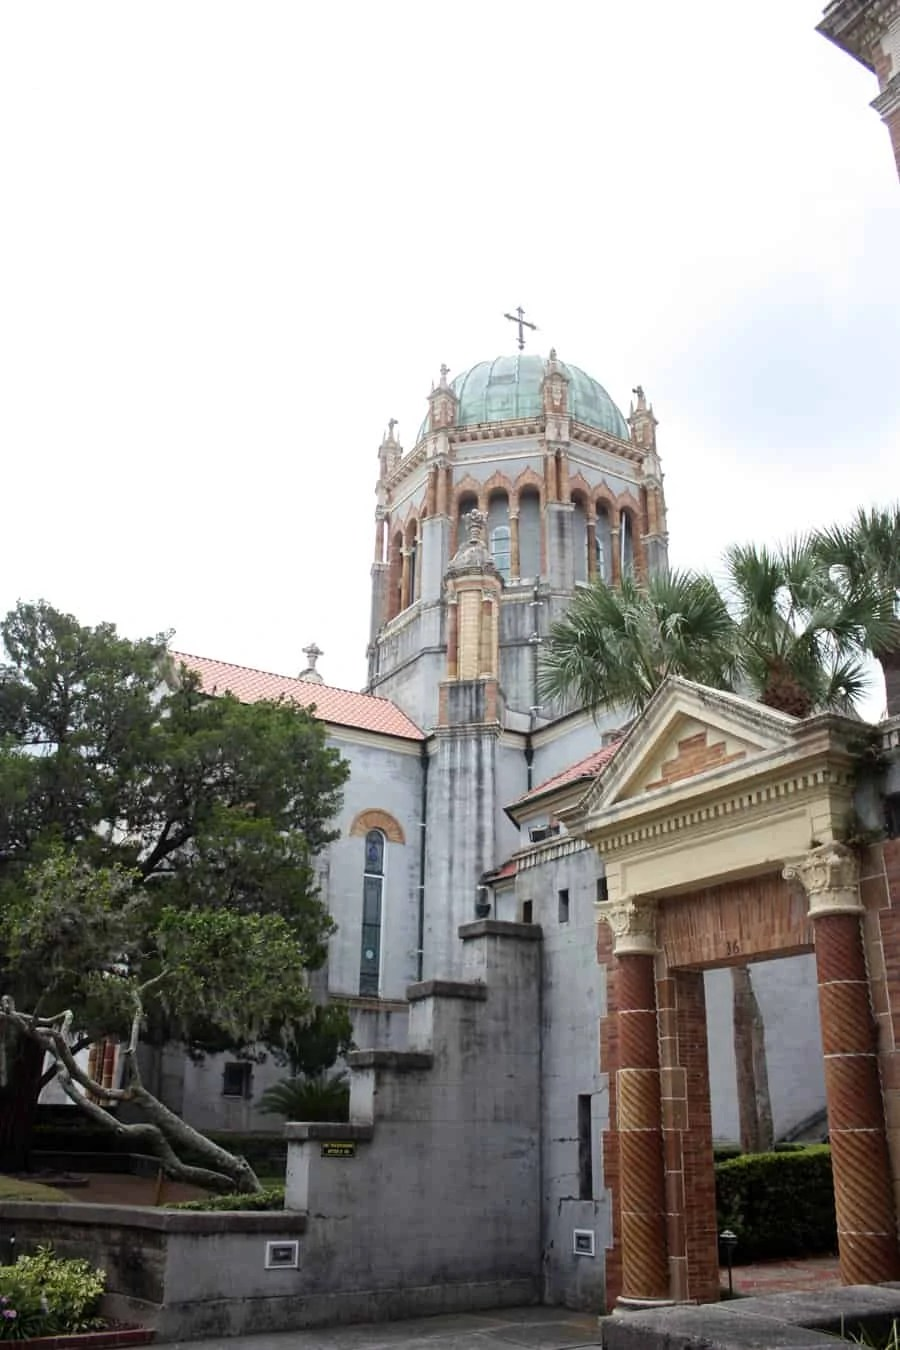 historic downtown Saint Augustine, Florida: sight seeing in the beautiful seaside town of the oldest city in the US! | via The Spirited Violet